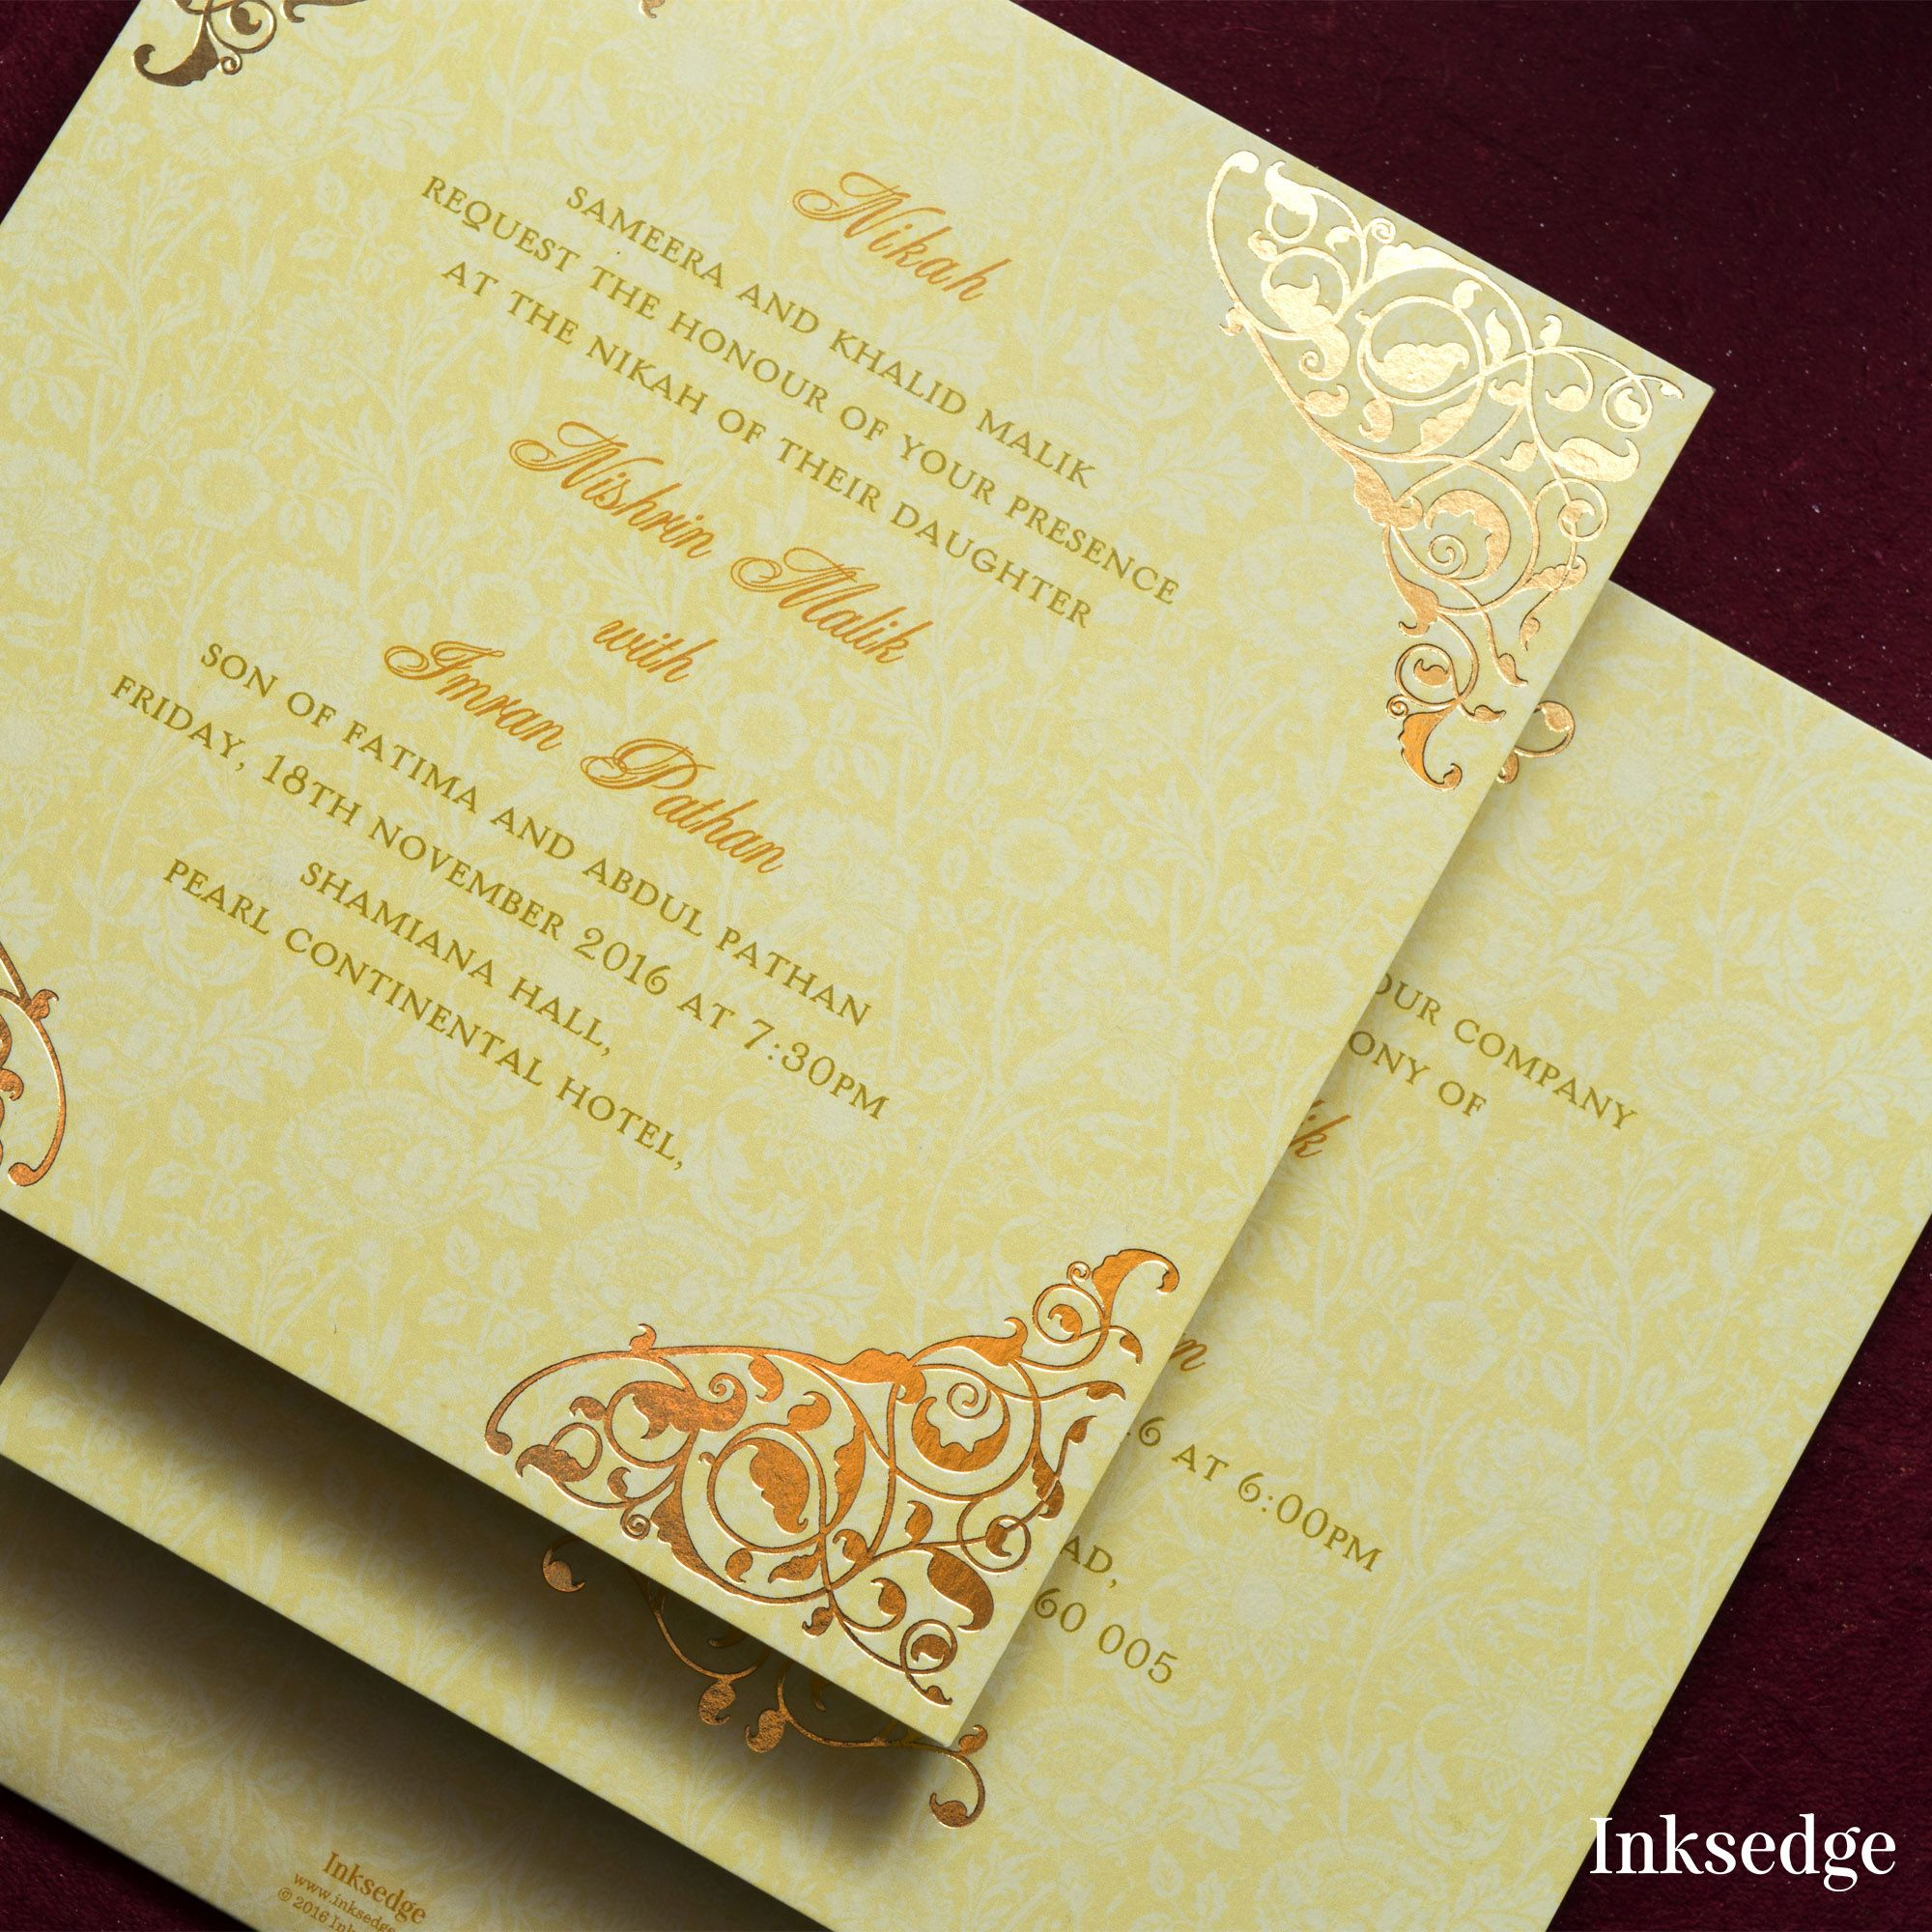 muslim wedding invitations mumbai%0A Foiled border on square invitations only by Inksedge   inksedge   islamicwedding  islamicweddinginvitations